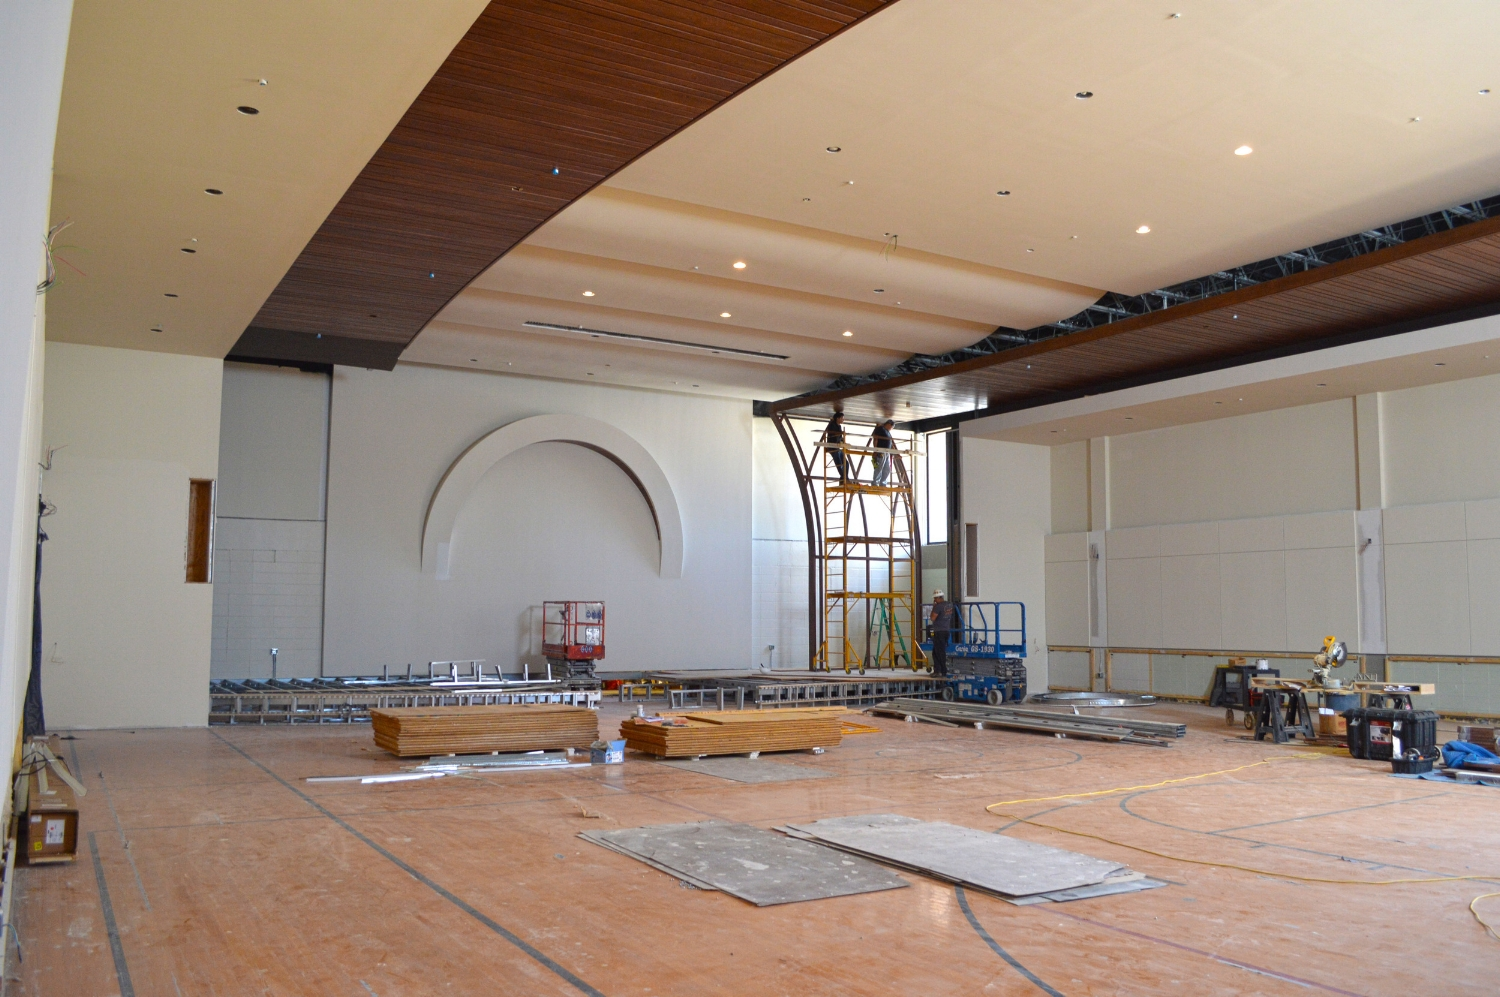 Workers install a wood slat screen wall on the Sanctuary stage. The mission style arch speaks to the local architectural flavor.